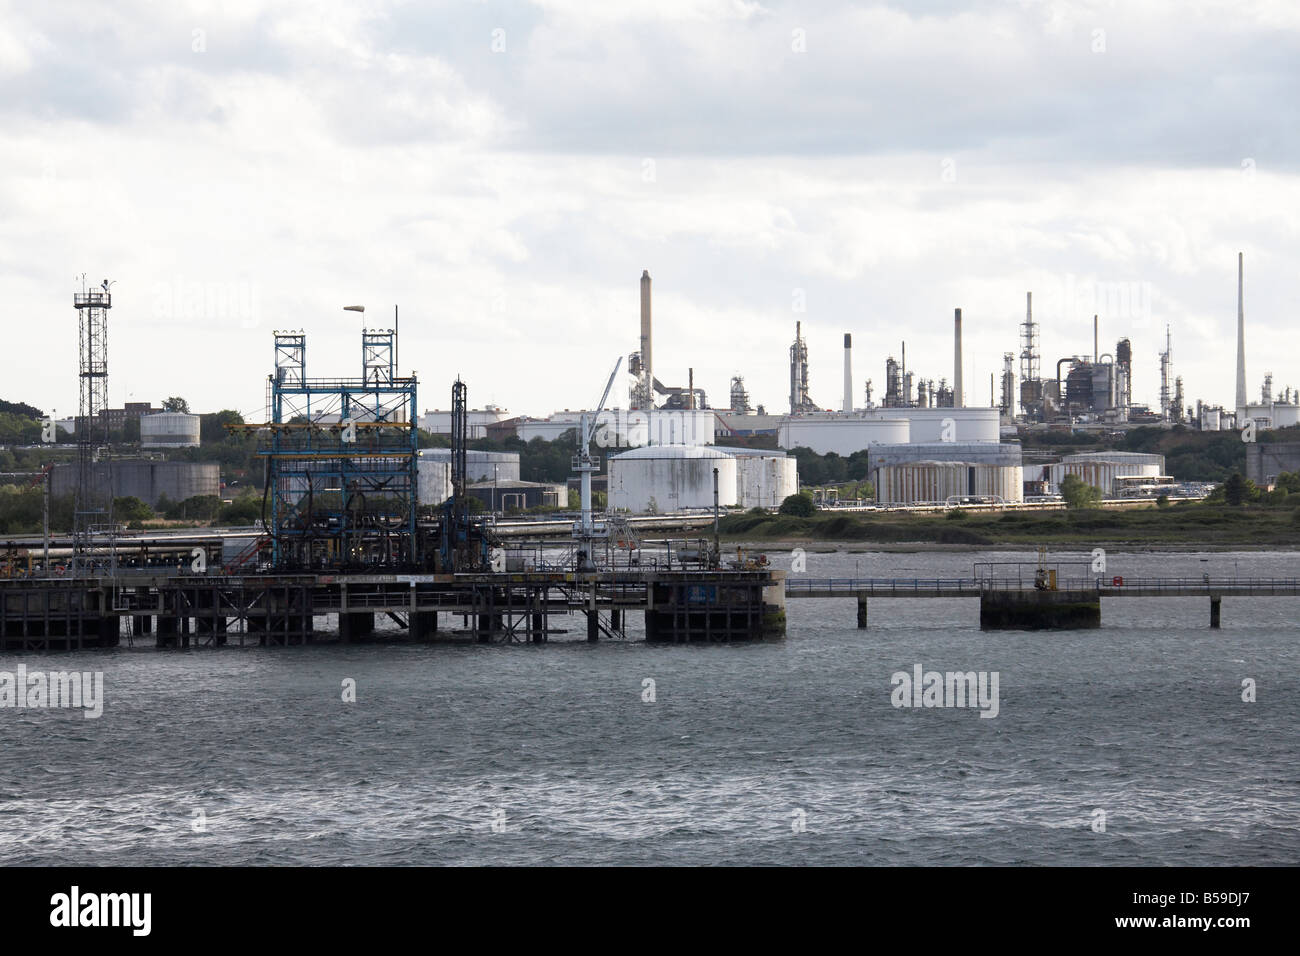 Fawley oil refinery port and natural gas terminal and storage depot tanks near Hythe Southampton Water England UK Stock Photo